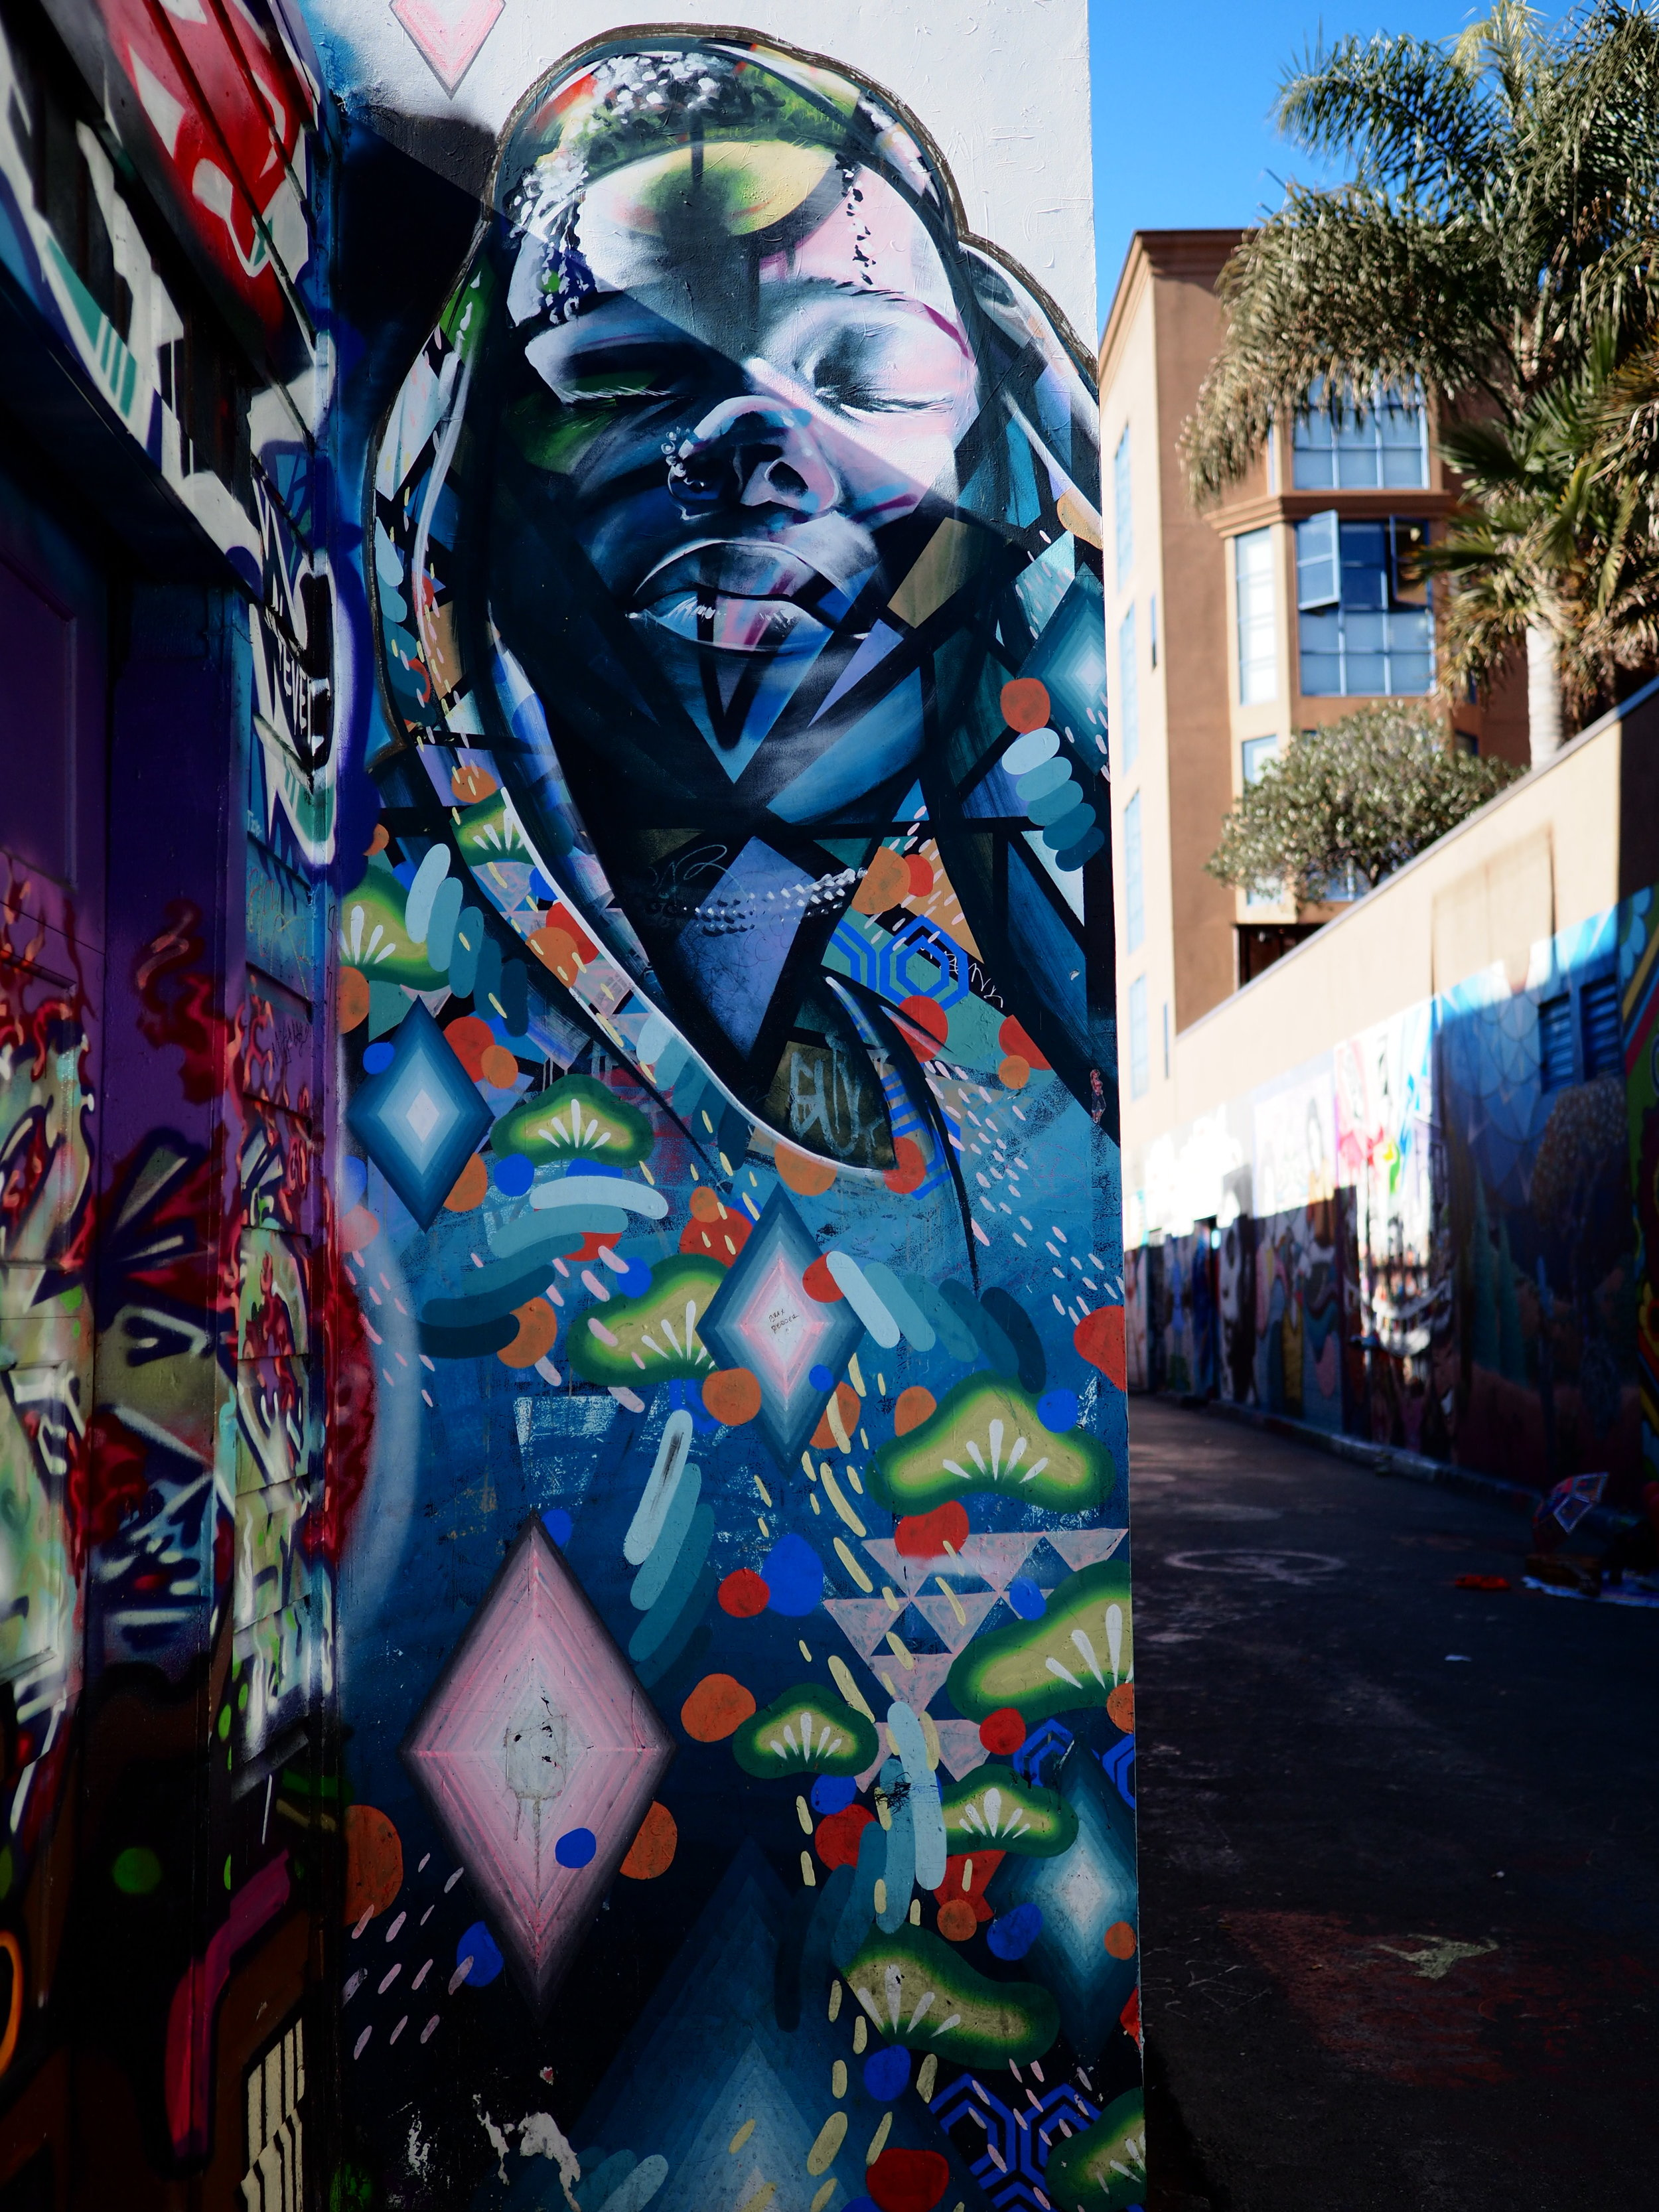 The Queen of Clarion Alley: Shot w/ the Olympus PEN-F + mZuiko 17mm f/1.2 PRO using a custom color profile. SOOC jpg.